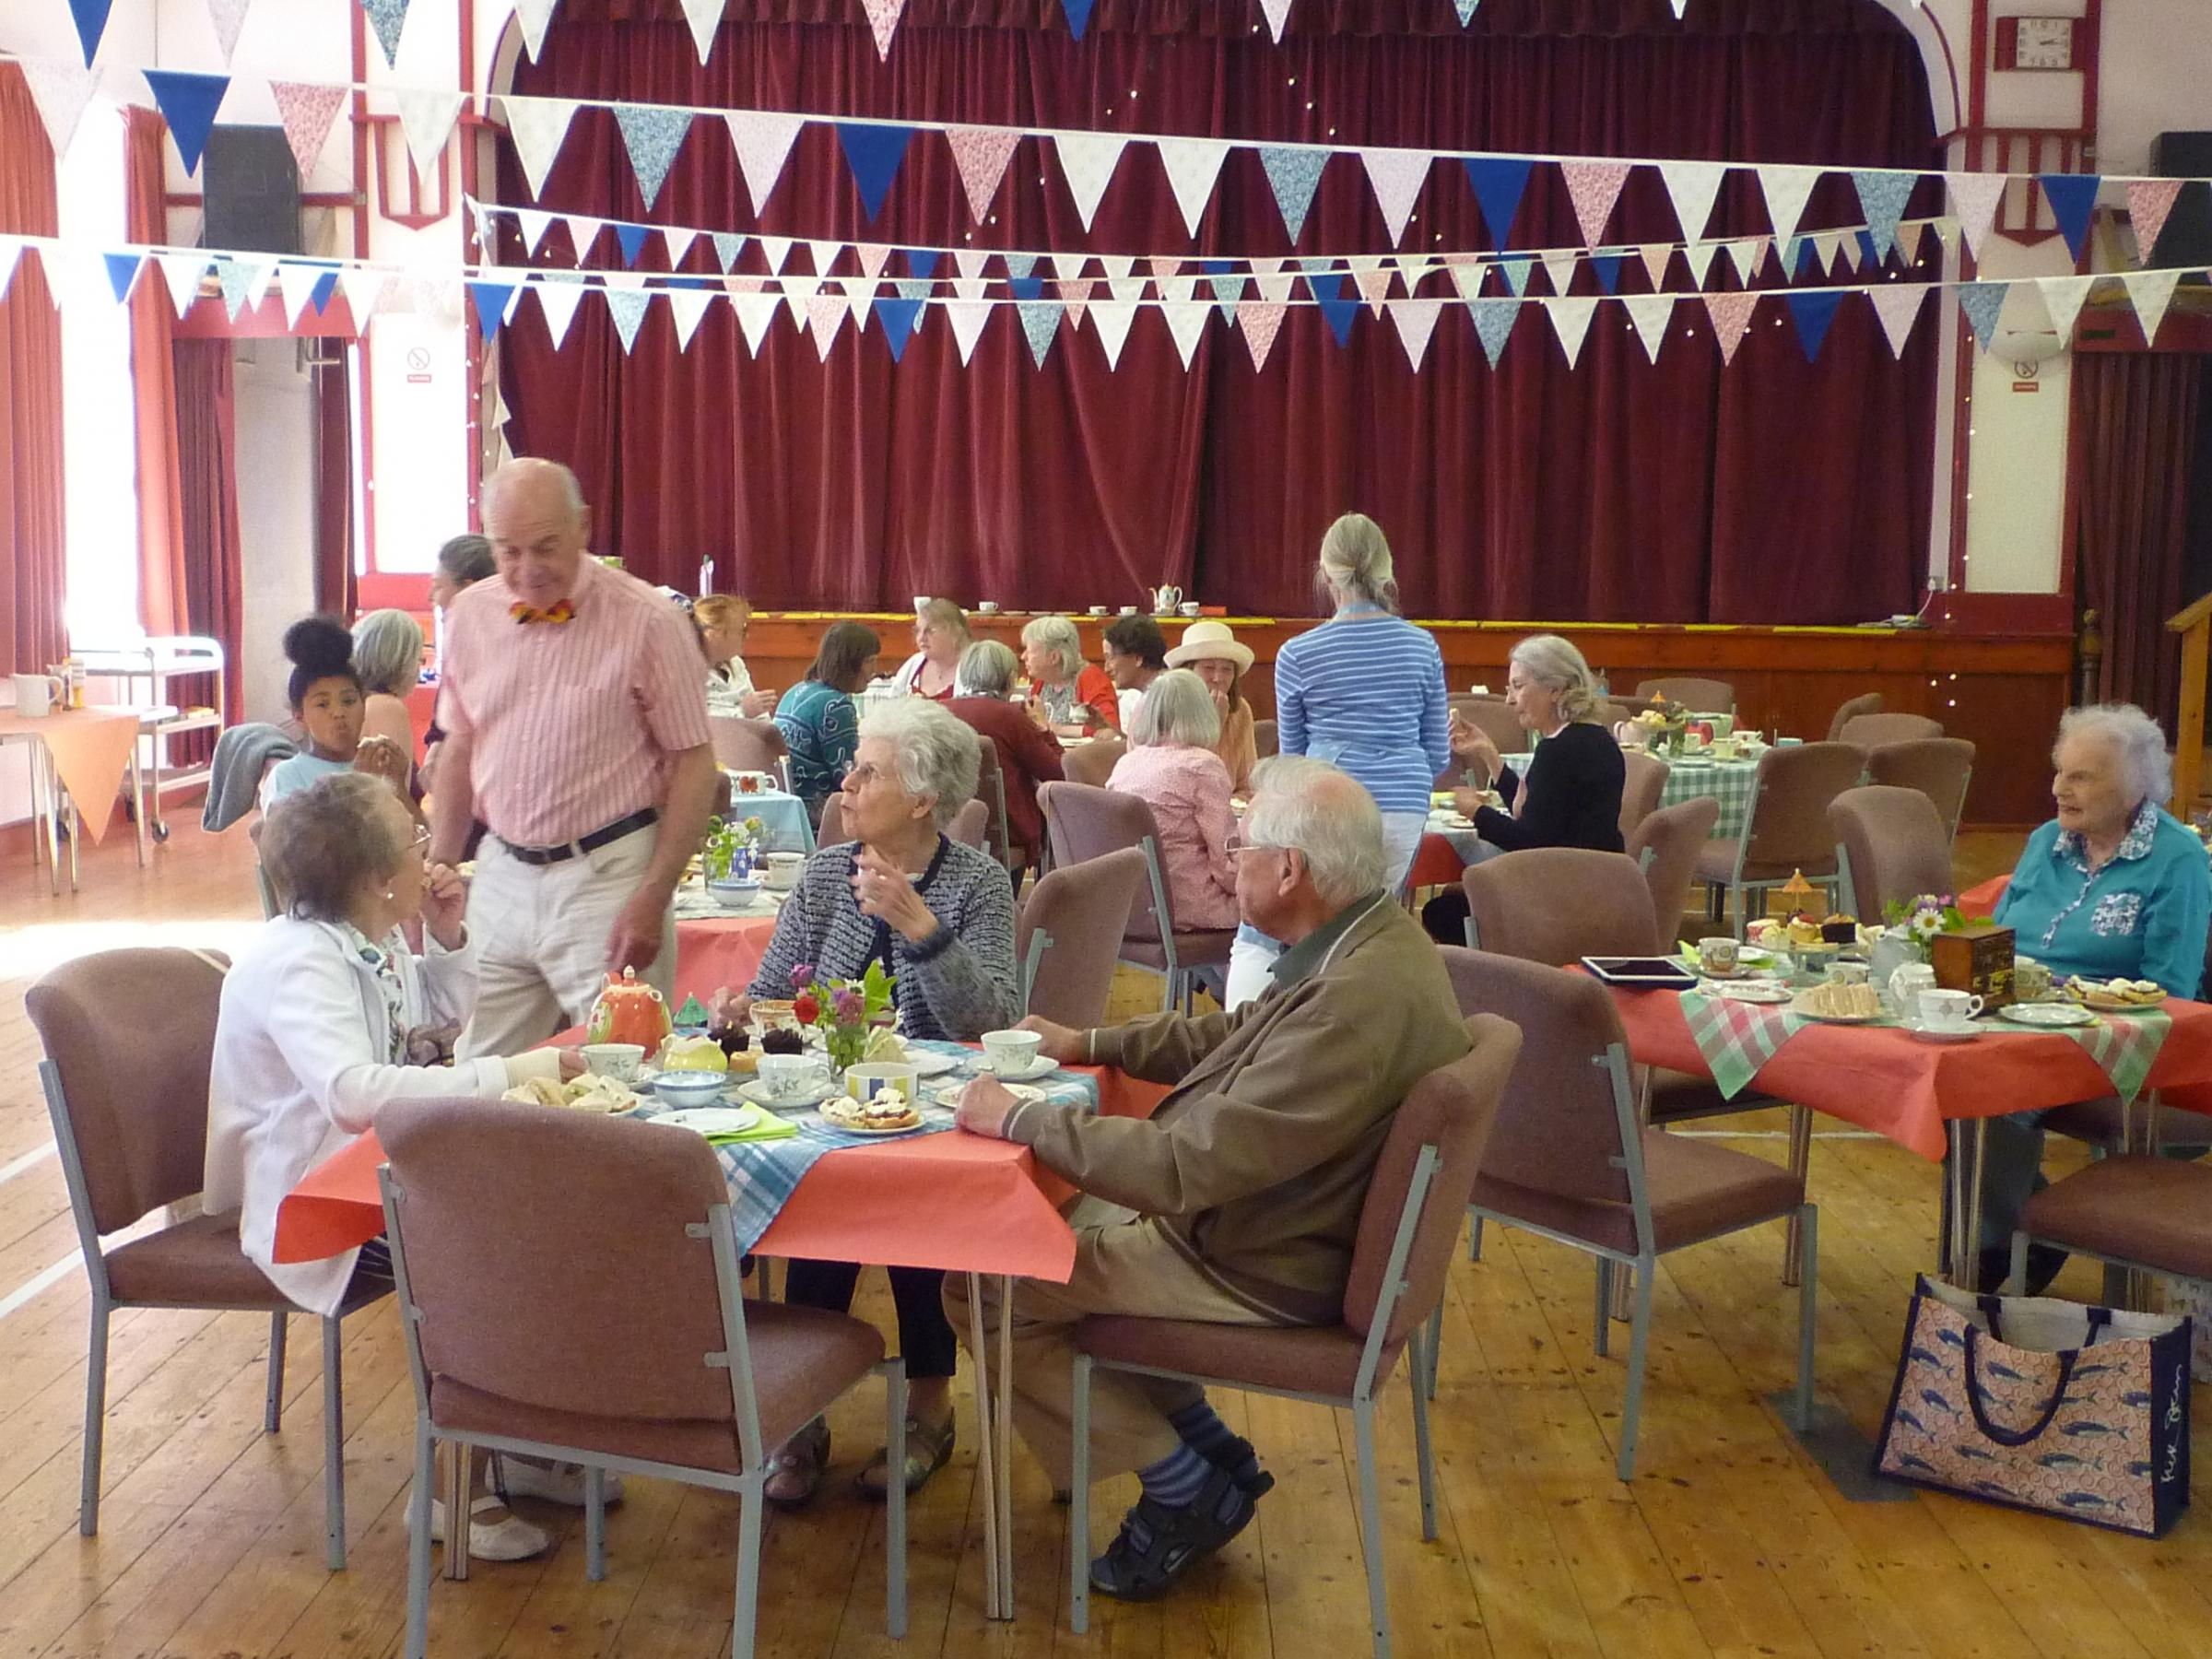 Old and young enjoy Newport's Age Cymru vintage tea party